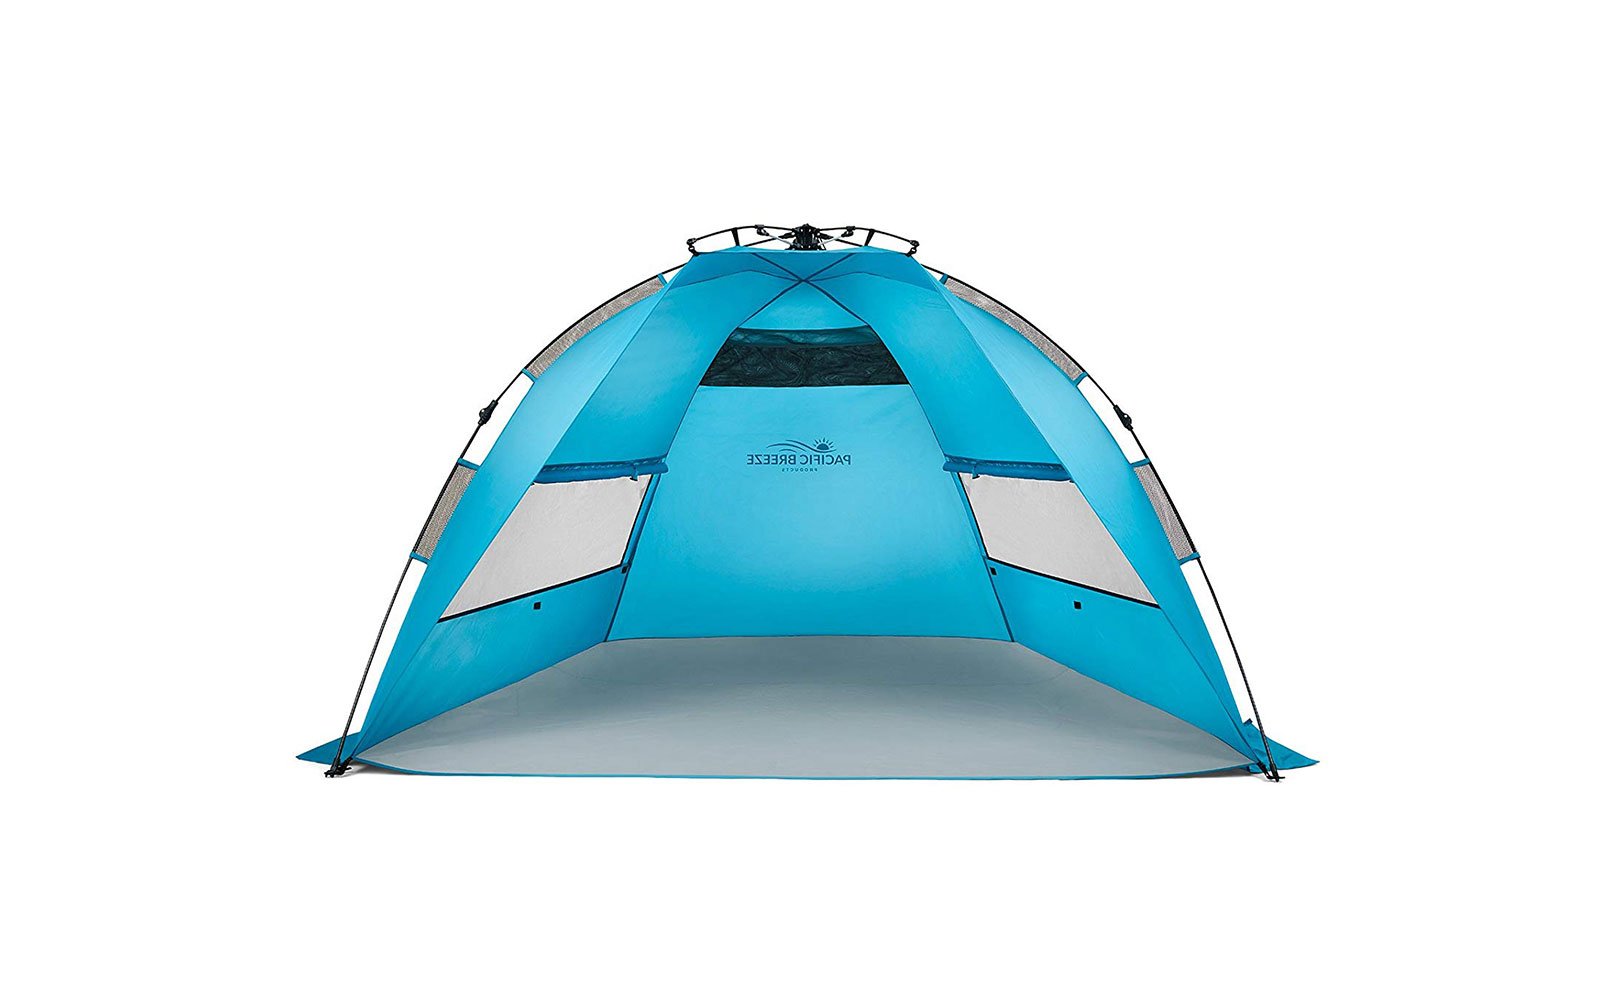 Pacific breeze tent